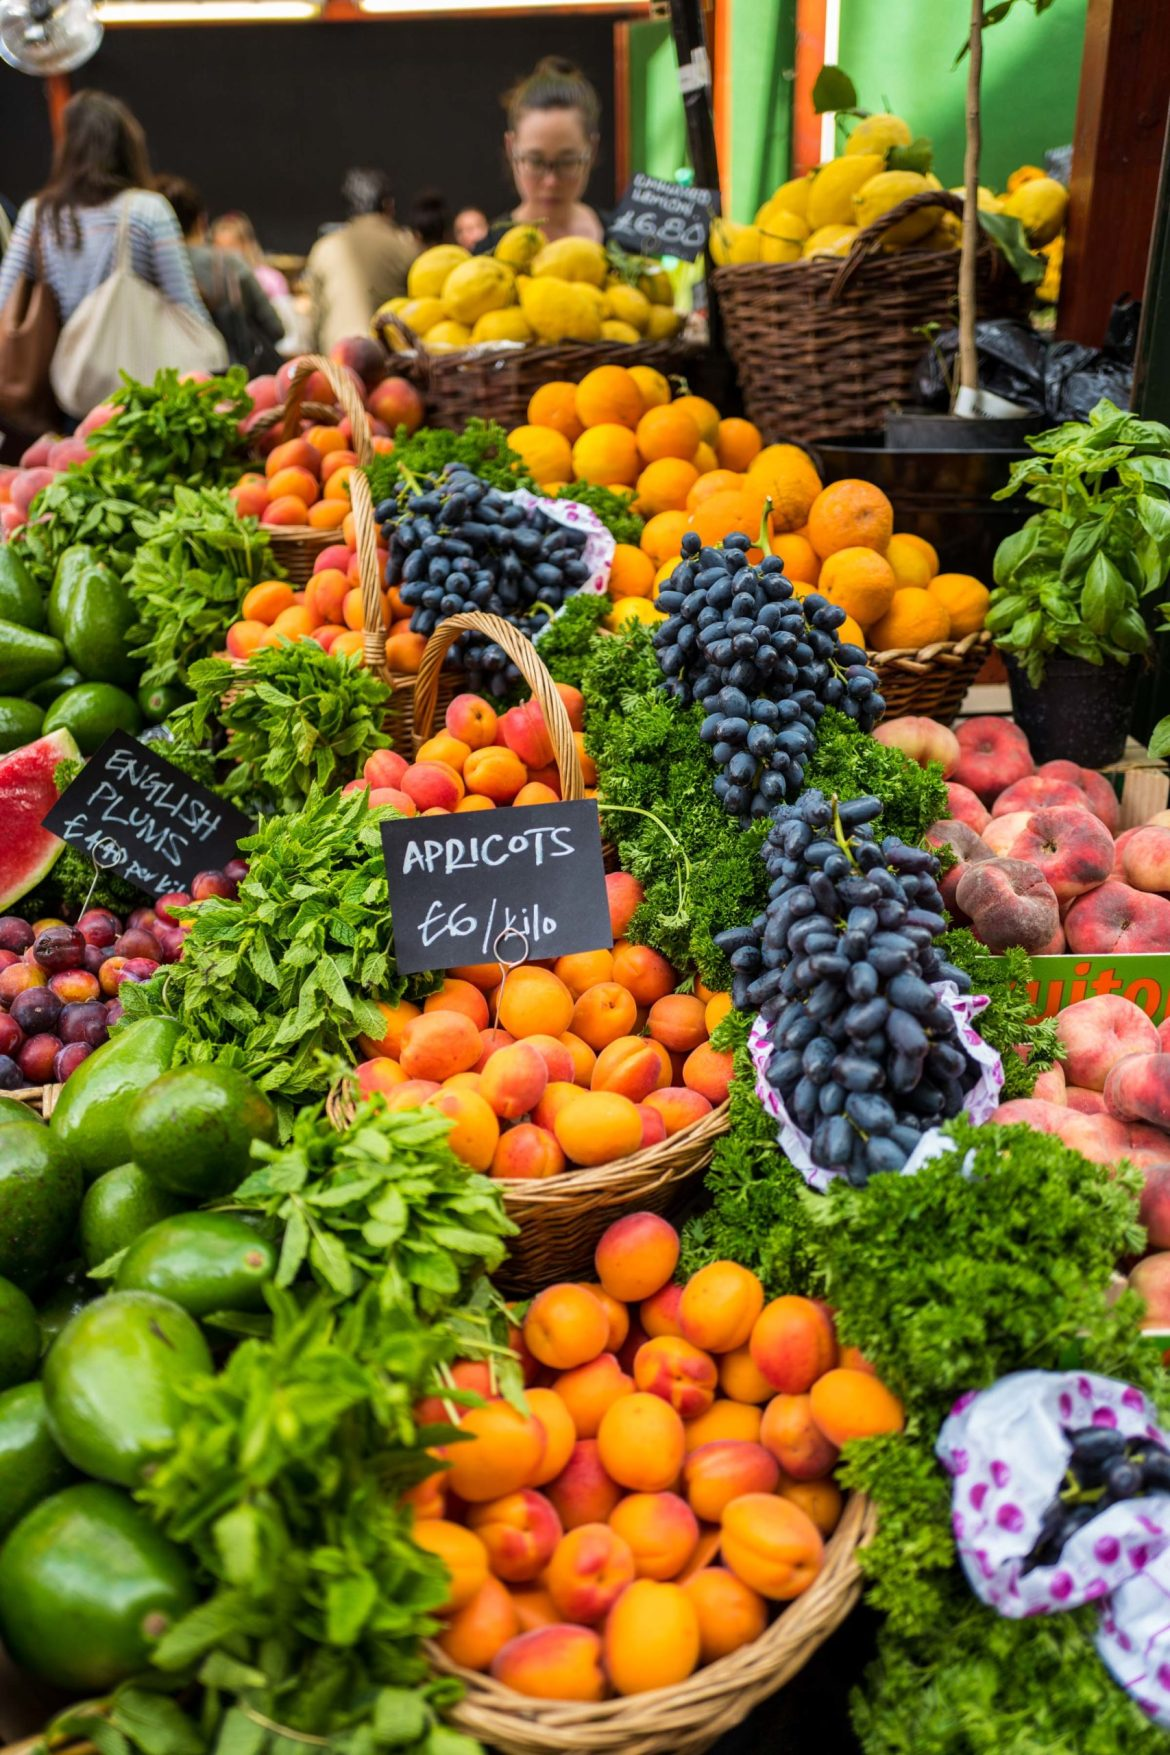 Borough market London is a foodie paradise with seasonal vegetables, cheeses, game, and more! Use The Taste Edit's guide to navigate your way through the market. #foodie #food #veggies